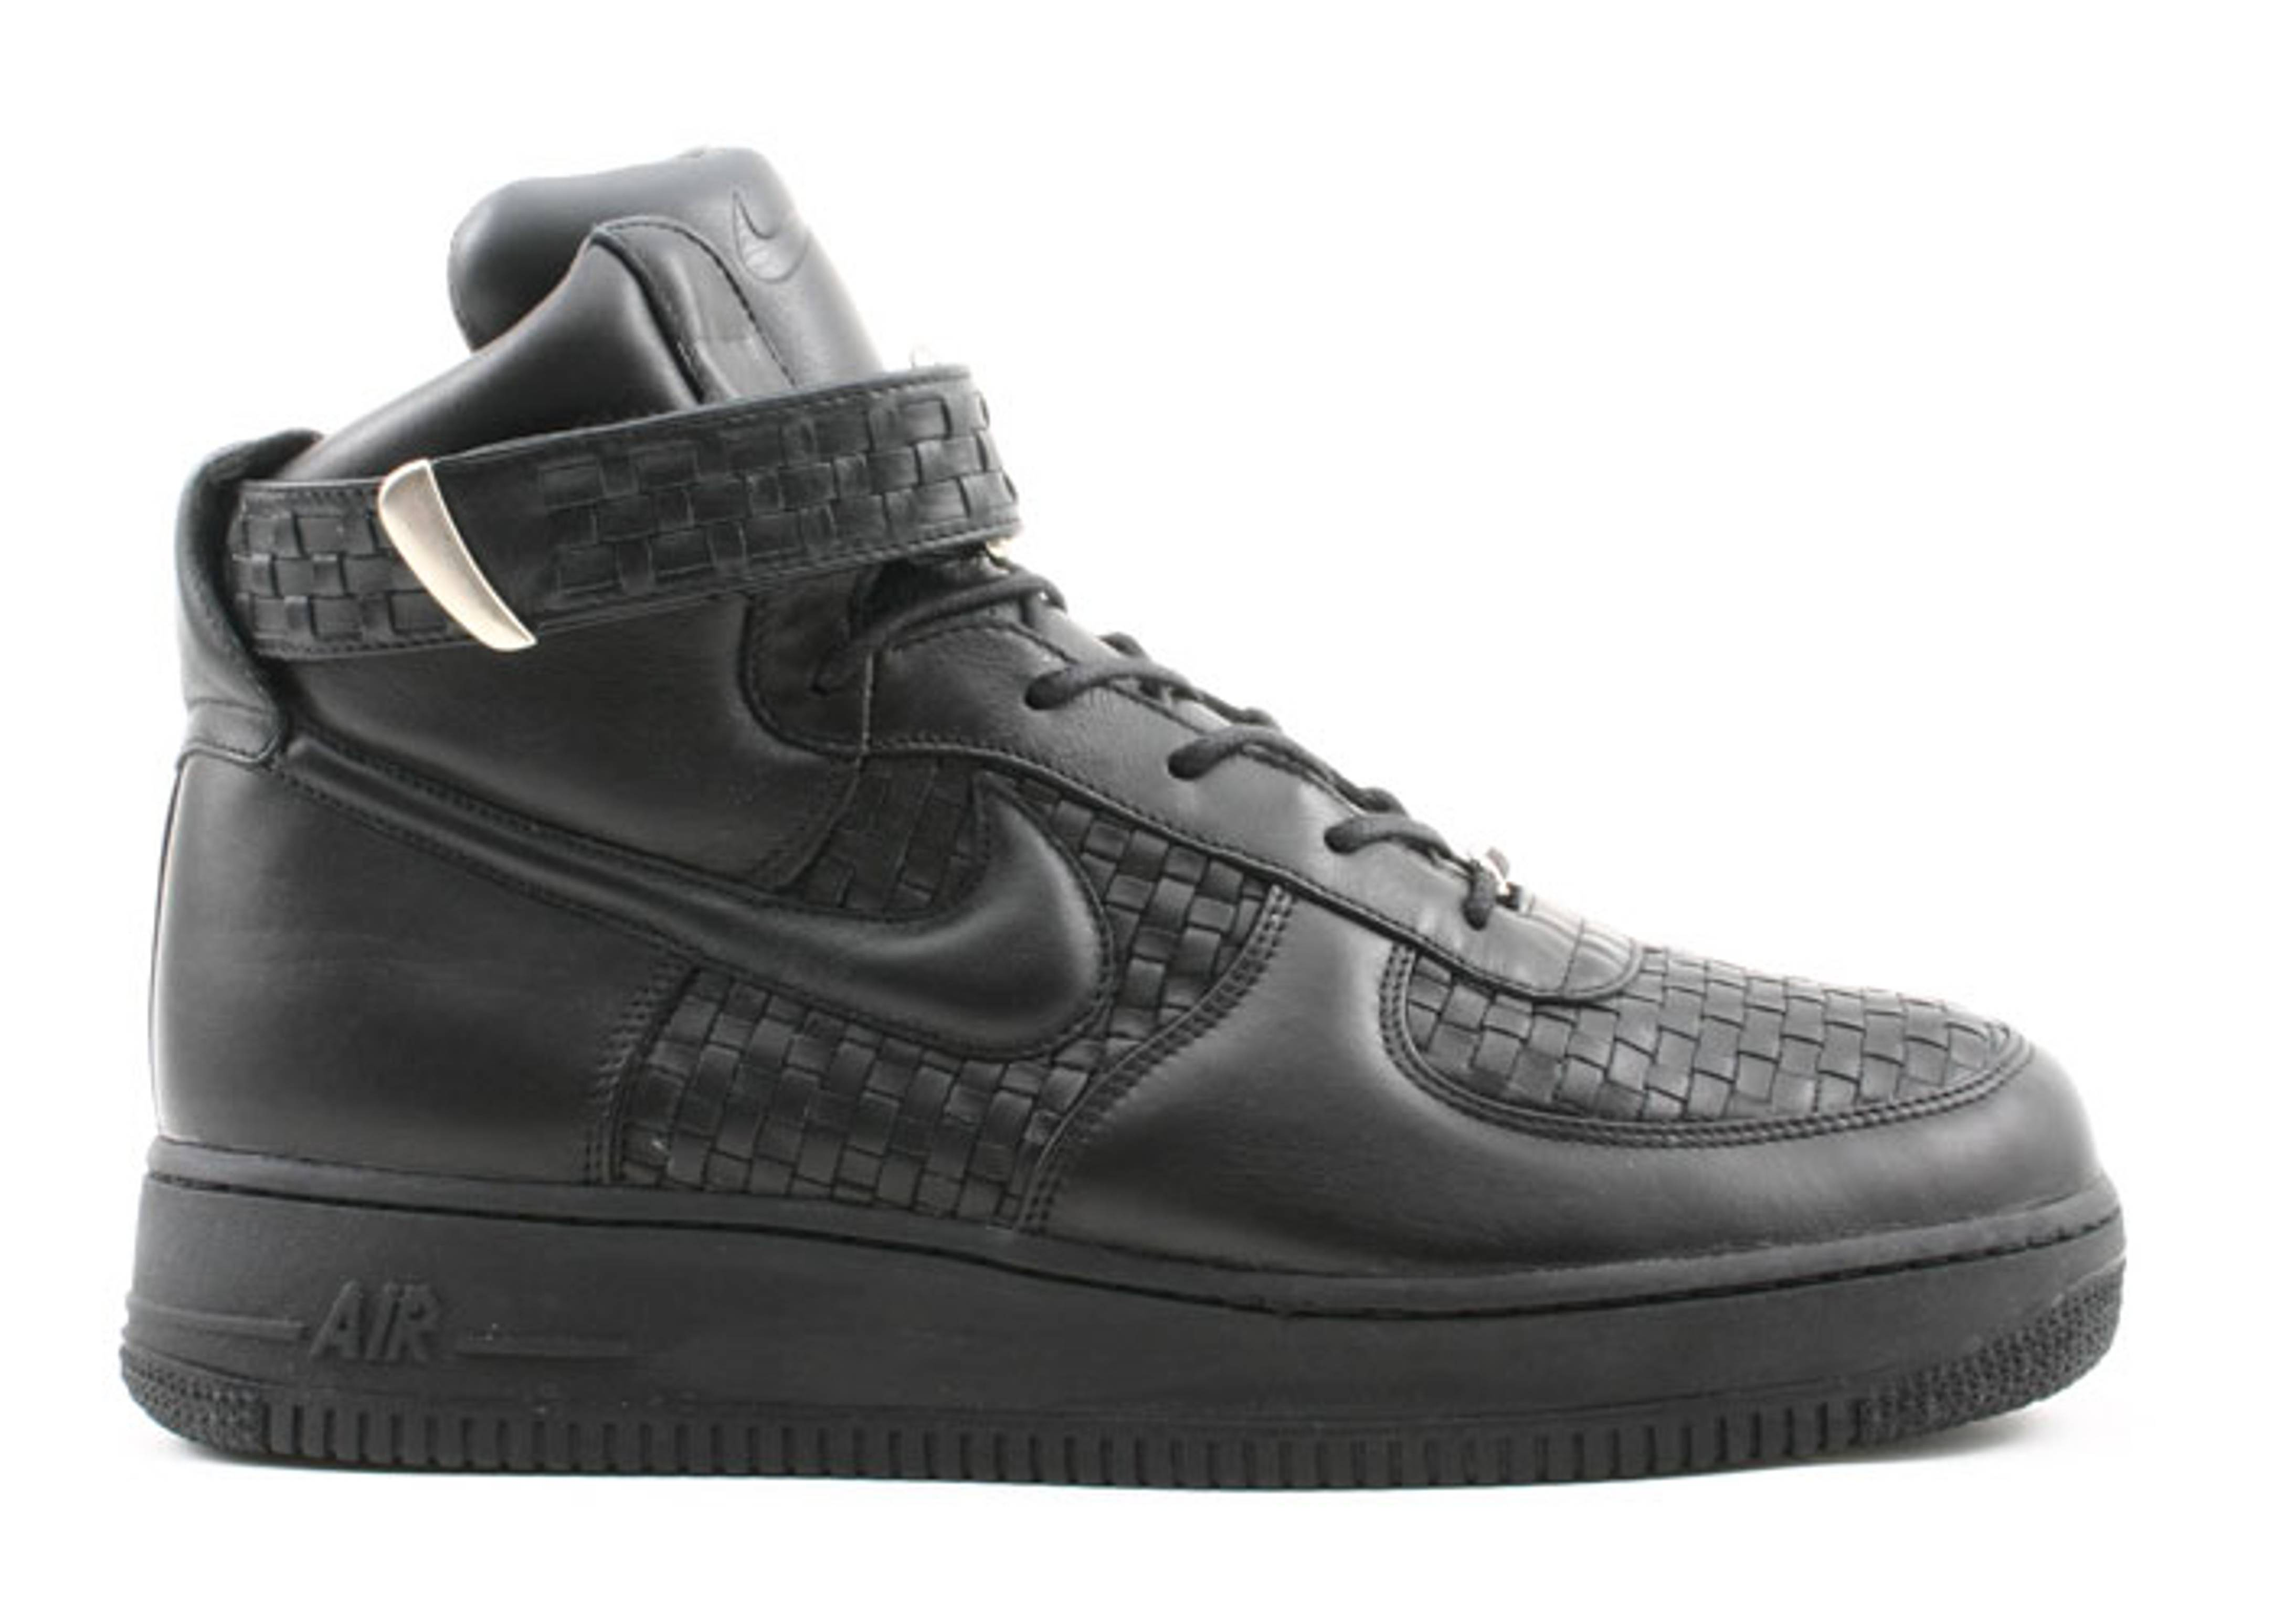 new style 80977 55101 Air Force 1 High Lux 04 - Nike - 311964 001 - black black   Flight Club